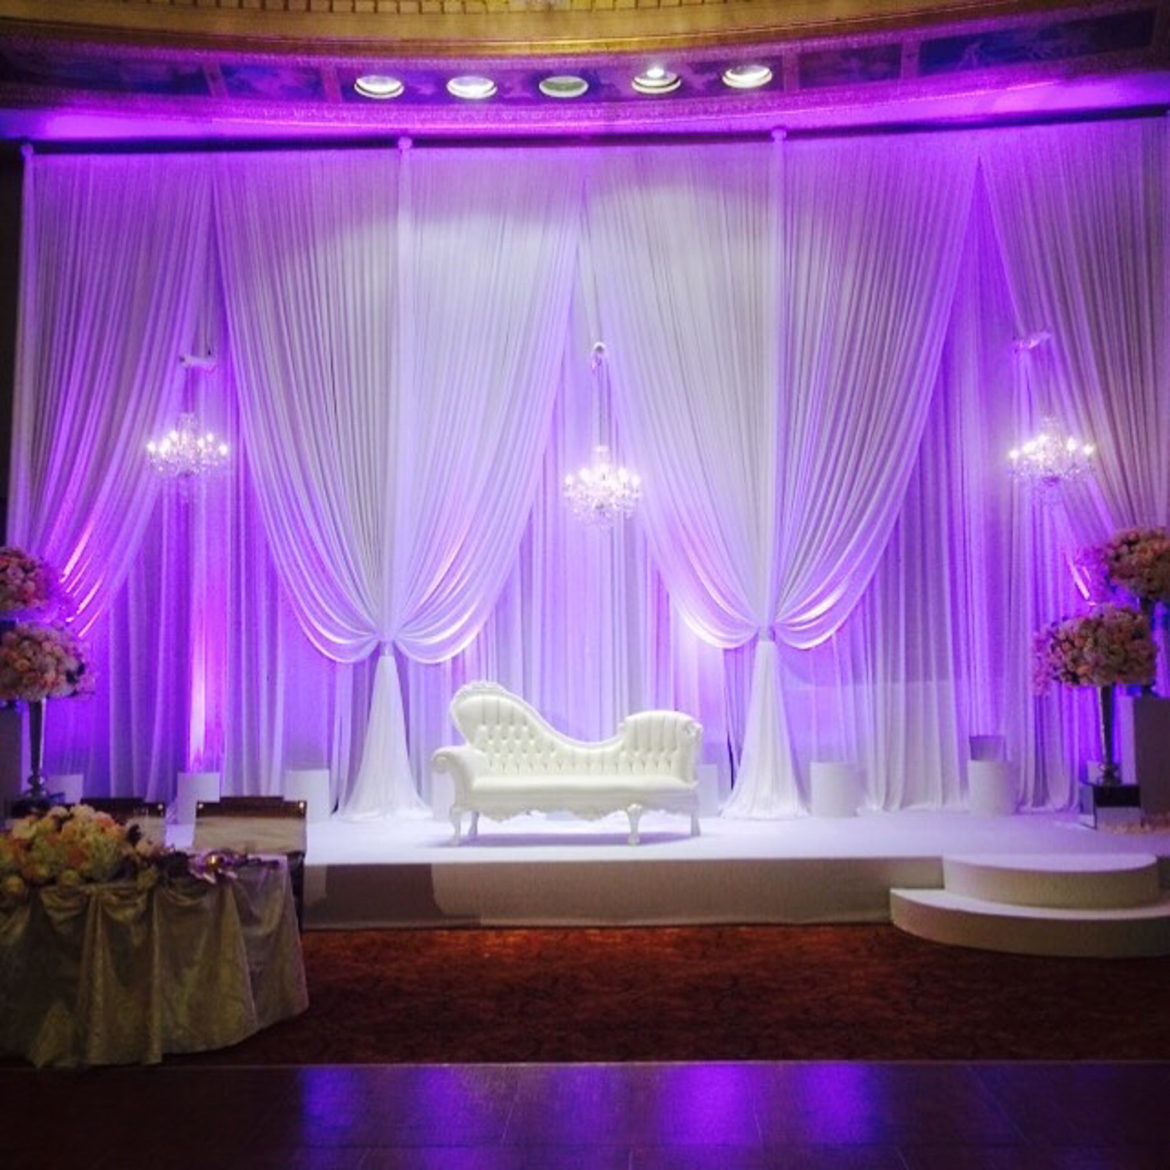 Elegant_Event_Lighting_Chicago_Intercontinental_Wedding_white_Draping_LED_Purple_Uplighting_Crystal_Chandeliers